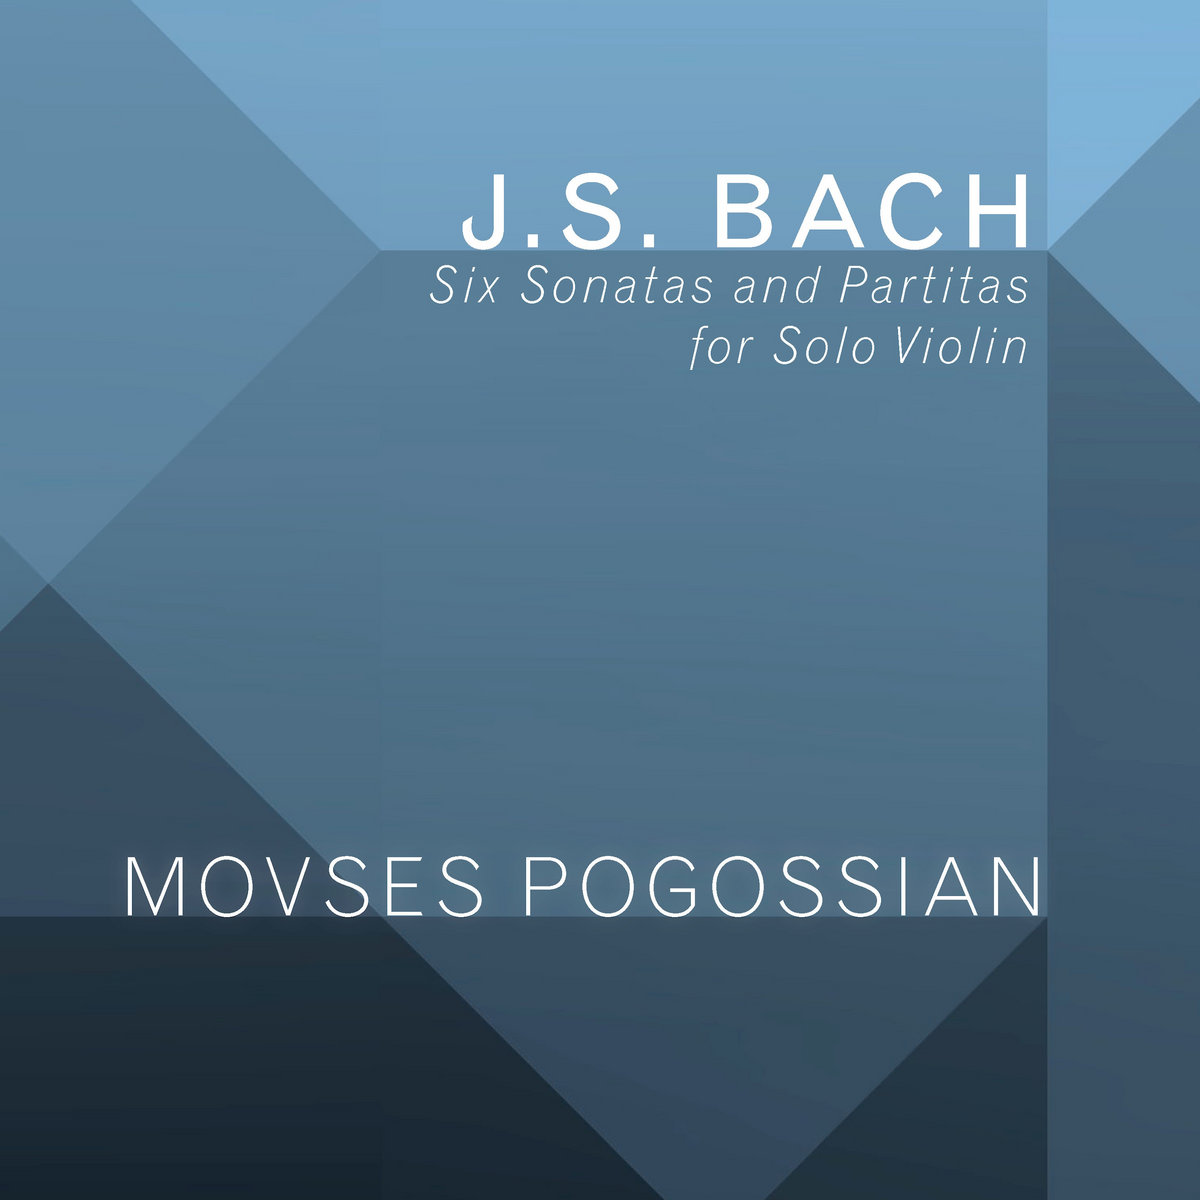 Movses Pogossian: J S  Bach: Six Sonatas and Partitas for